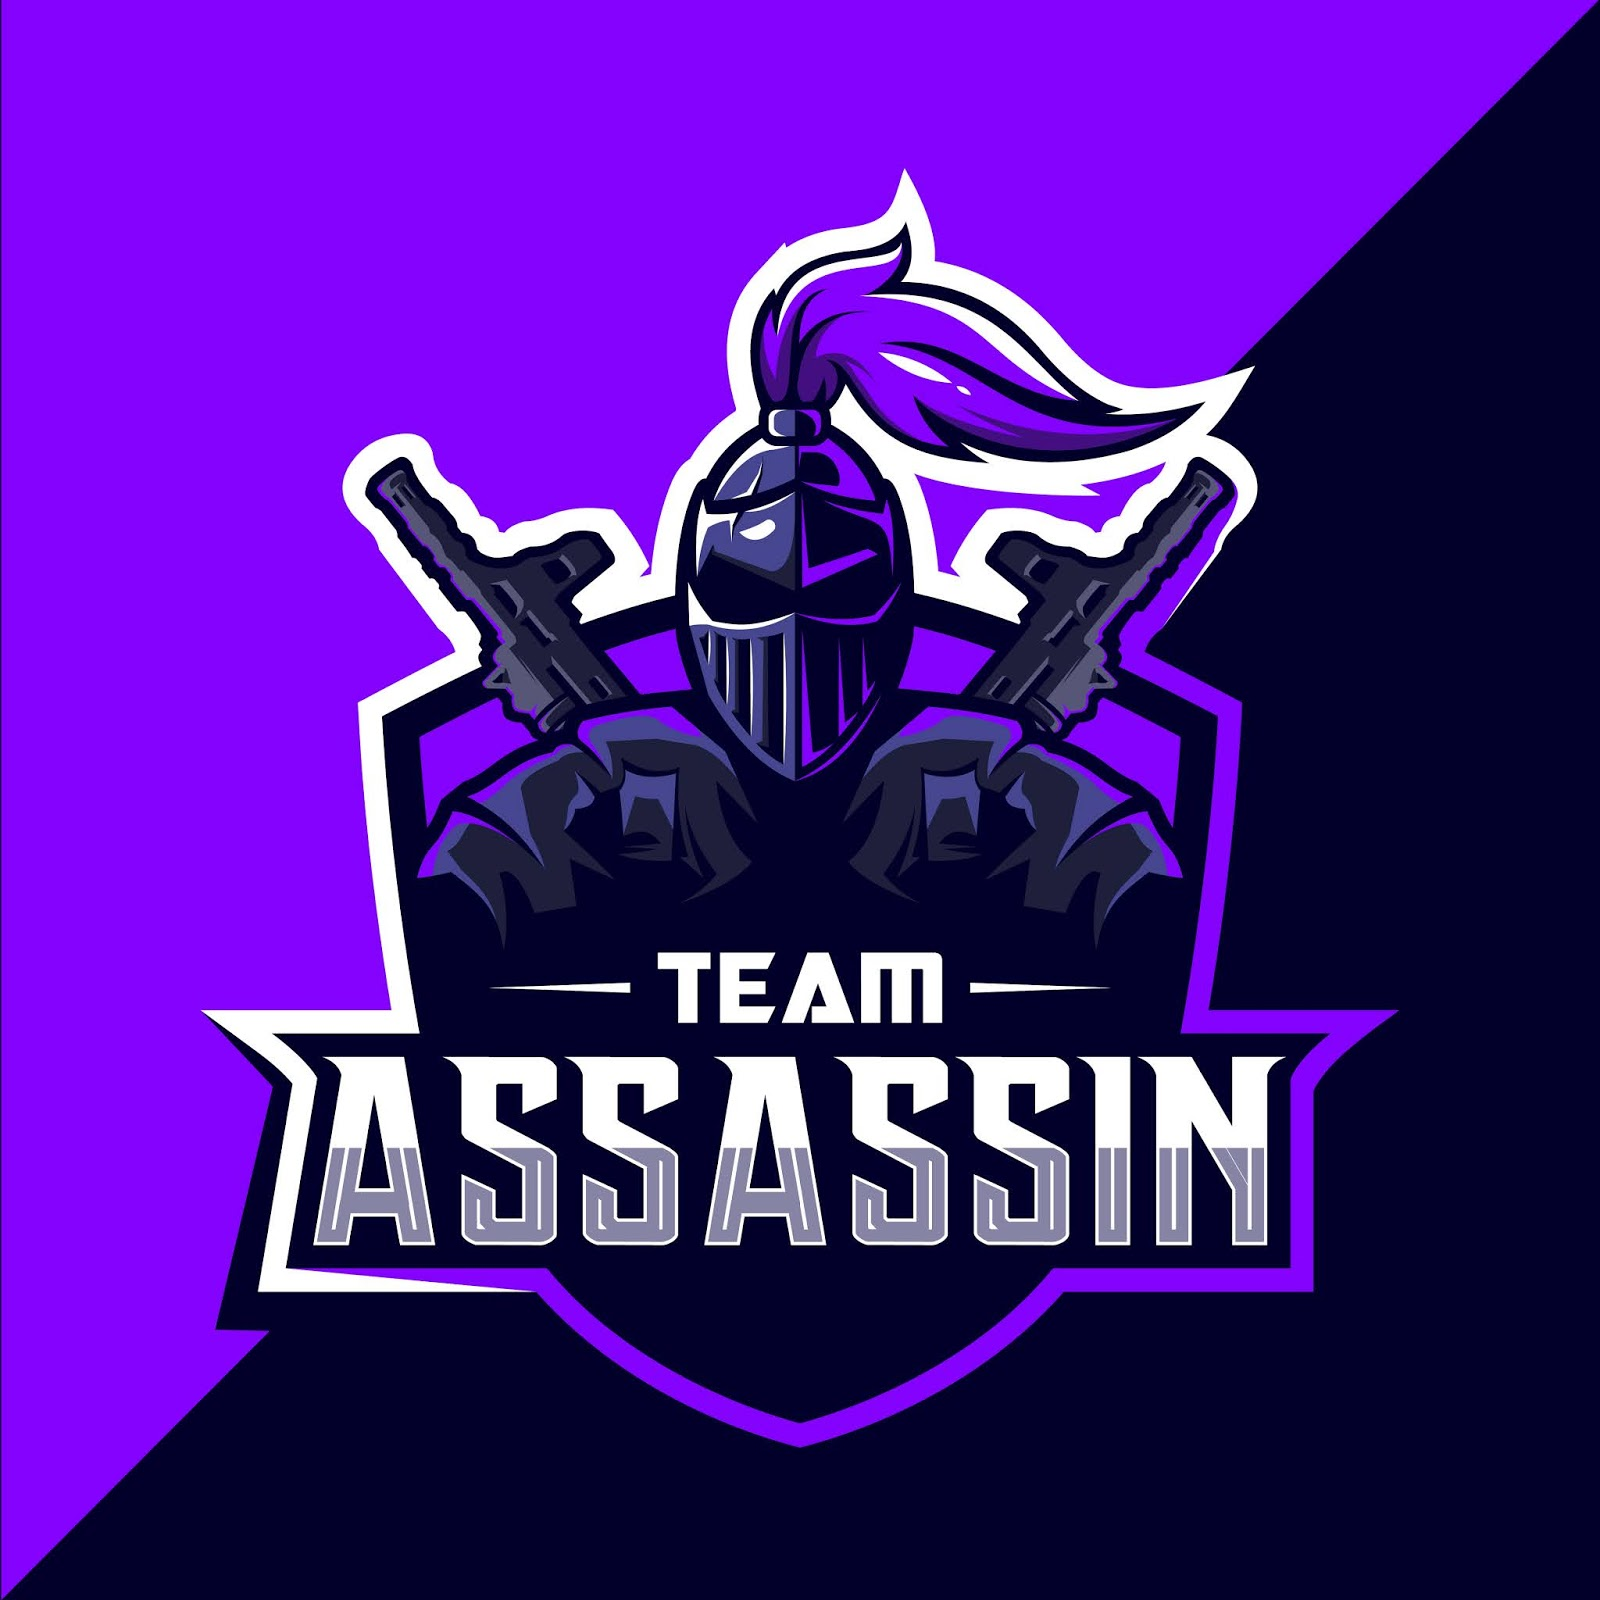 Assassin Esport Logo Free Download Vector CDR, AI, EPS and PNG Formats